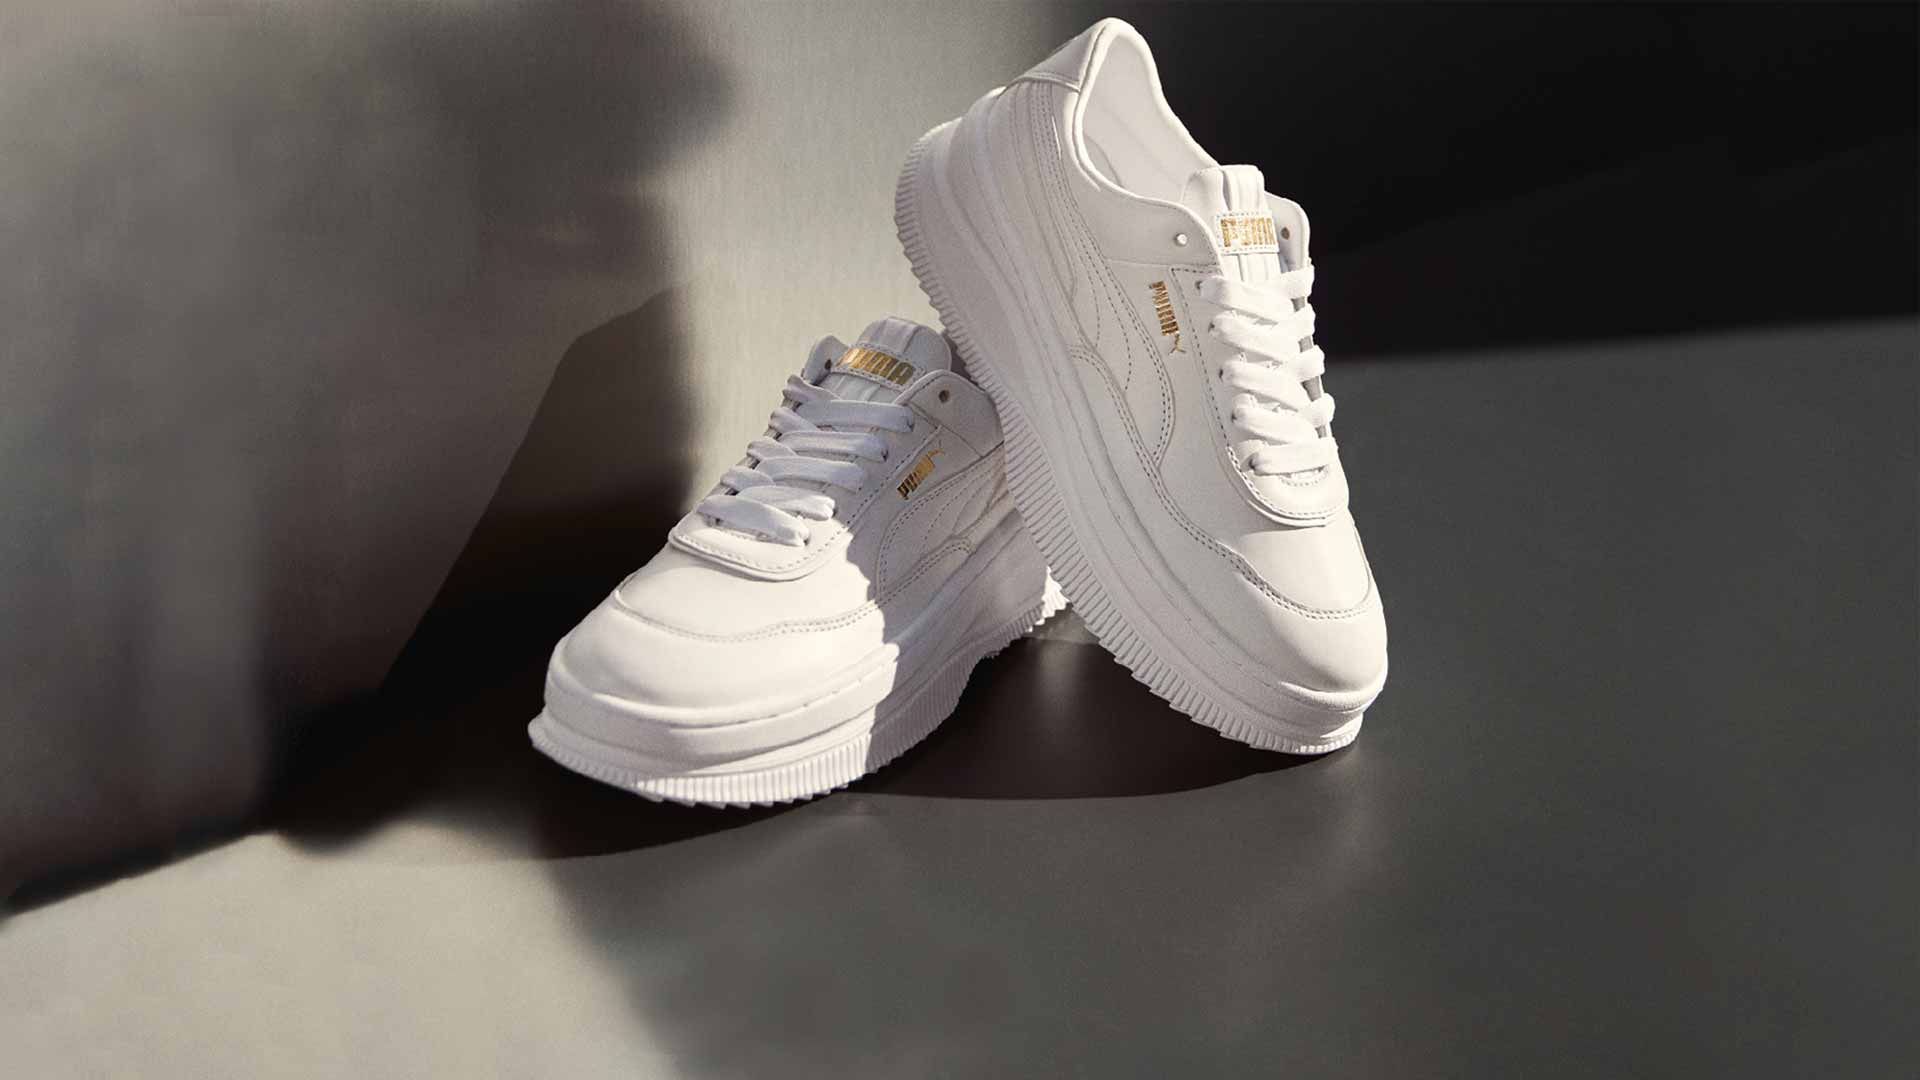 Become a diva with the new Puma DEVA